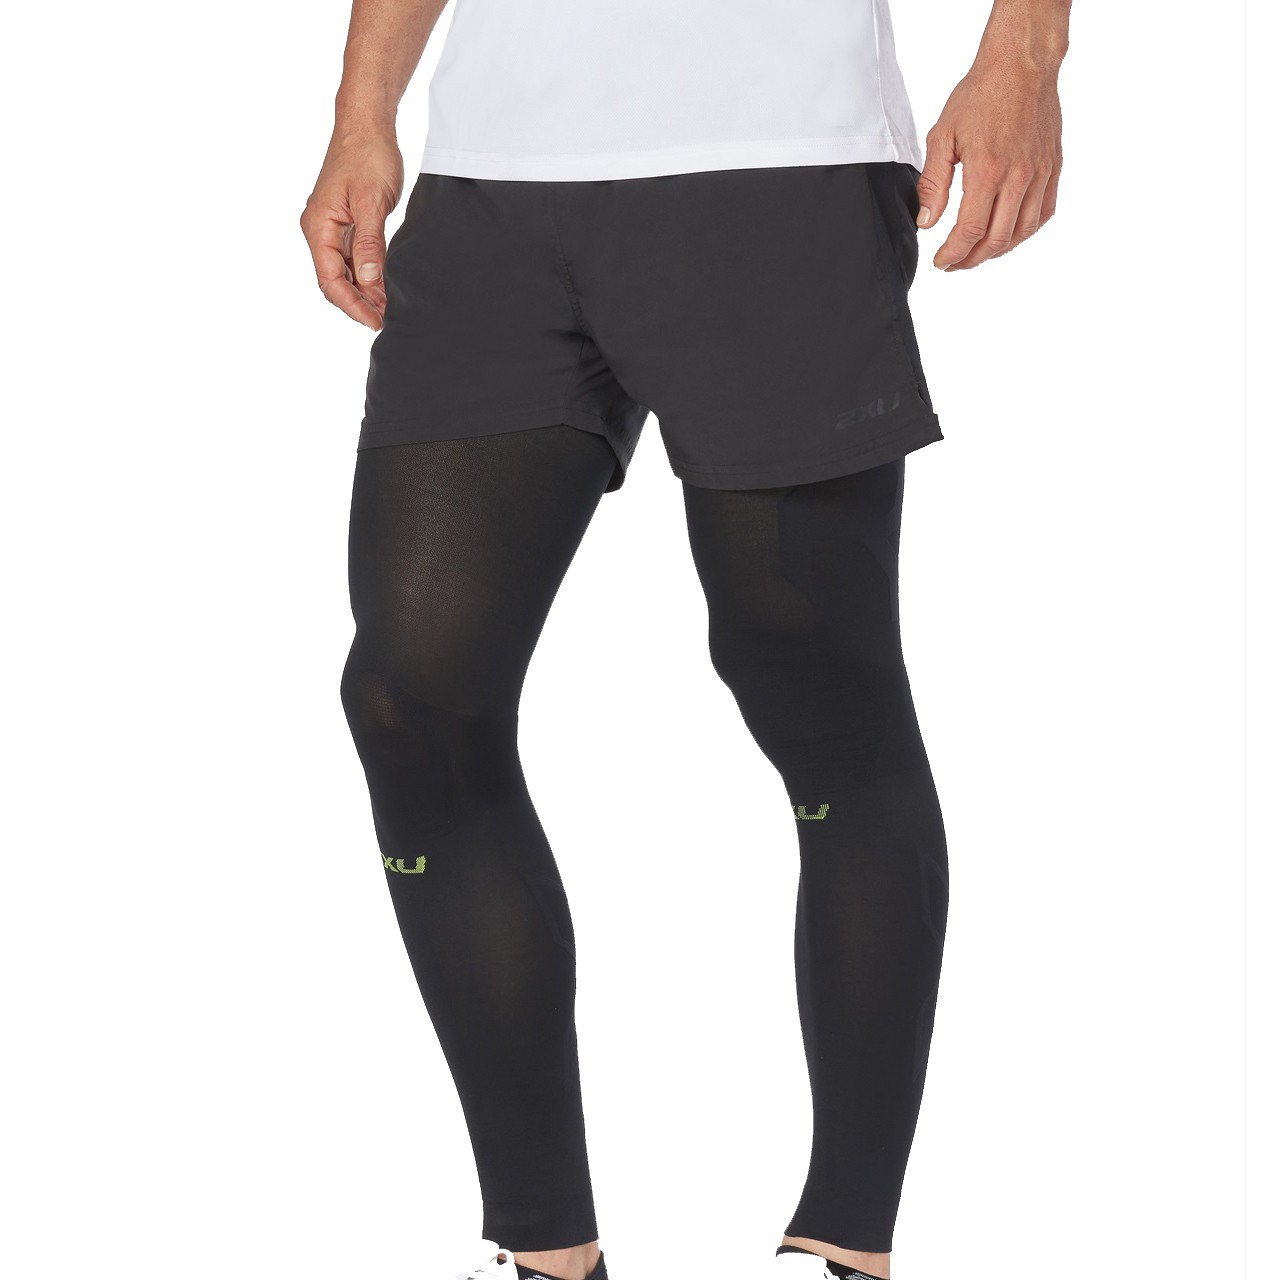 2XU Recovery Flex Compression Leg Sleeves - 2019 price